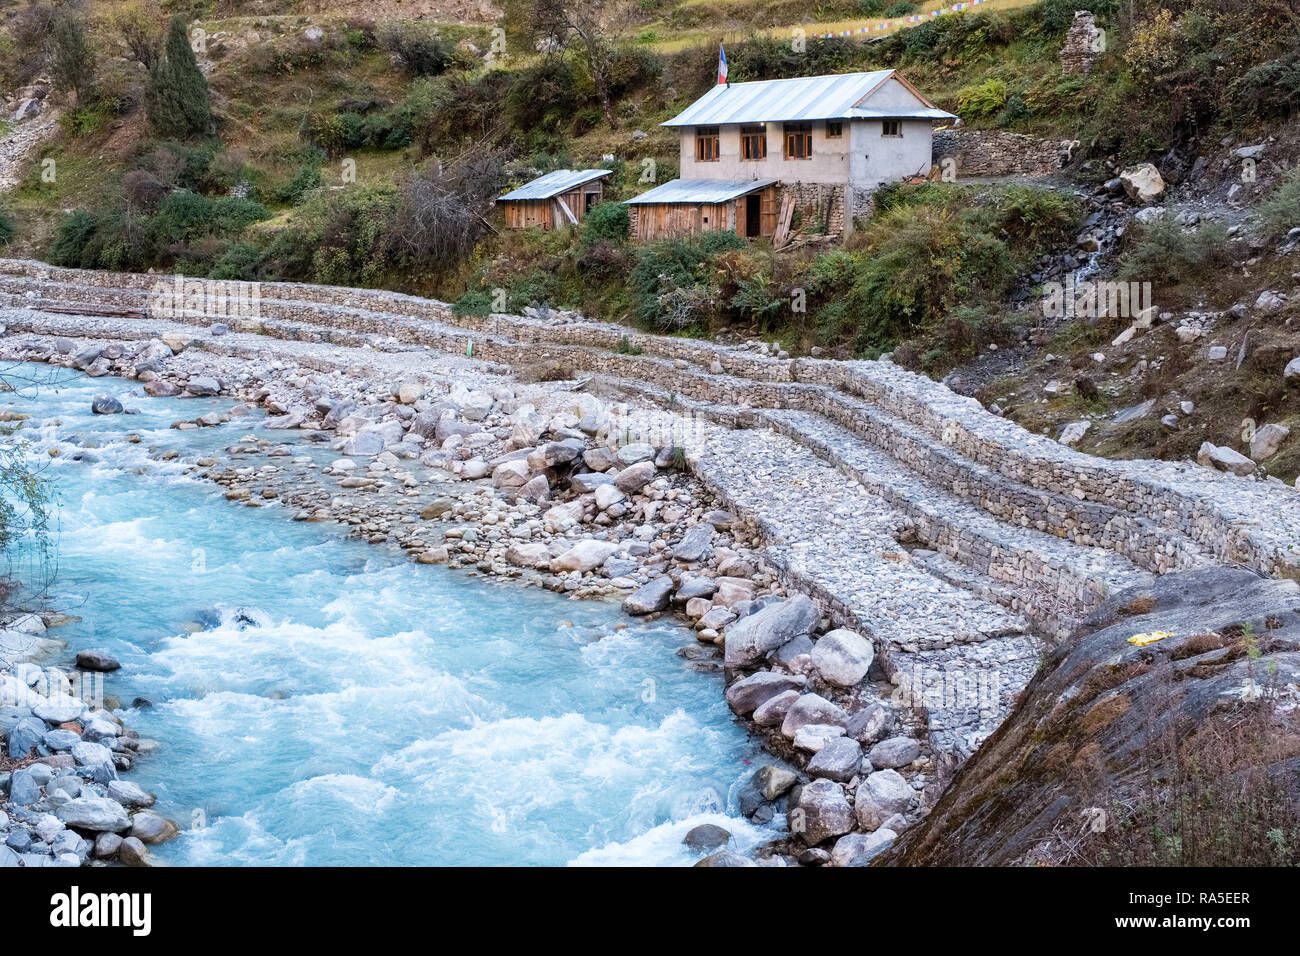 Reinforced river banks in the Langtang Valley, Nepal Himalayas - Stock Image